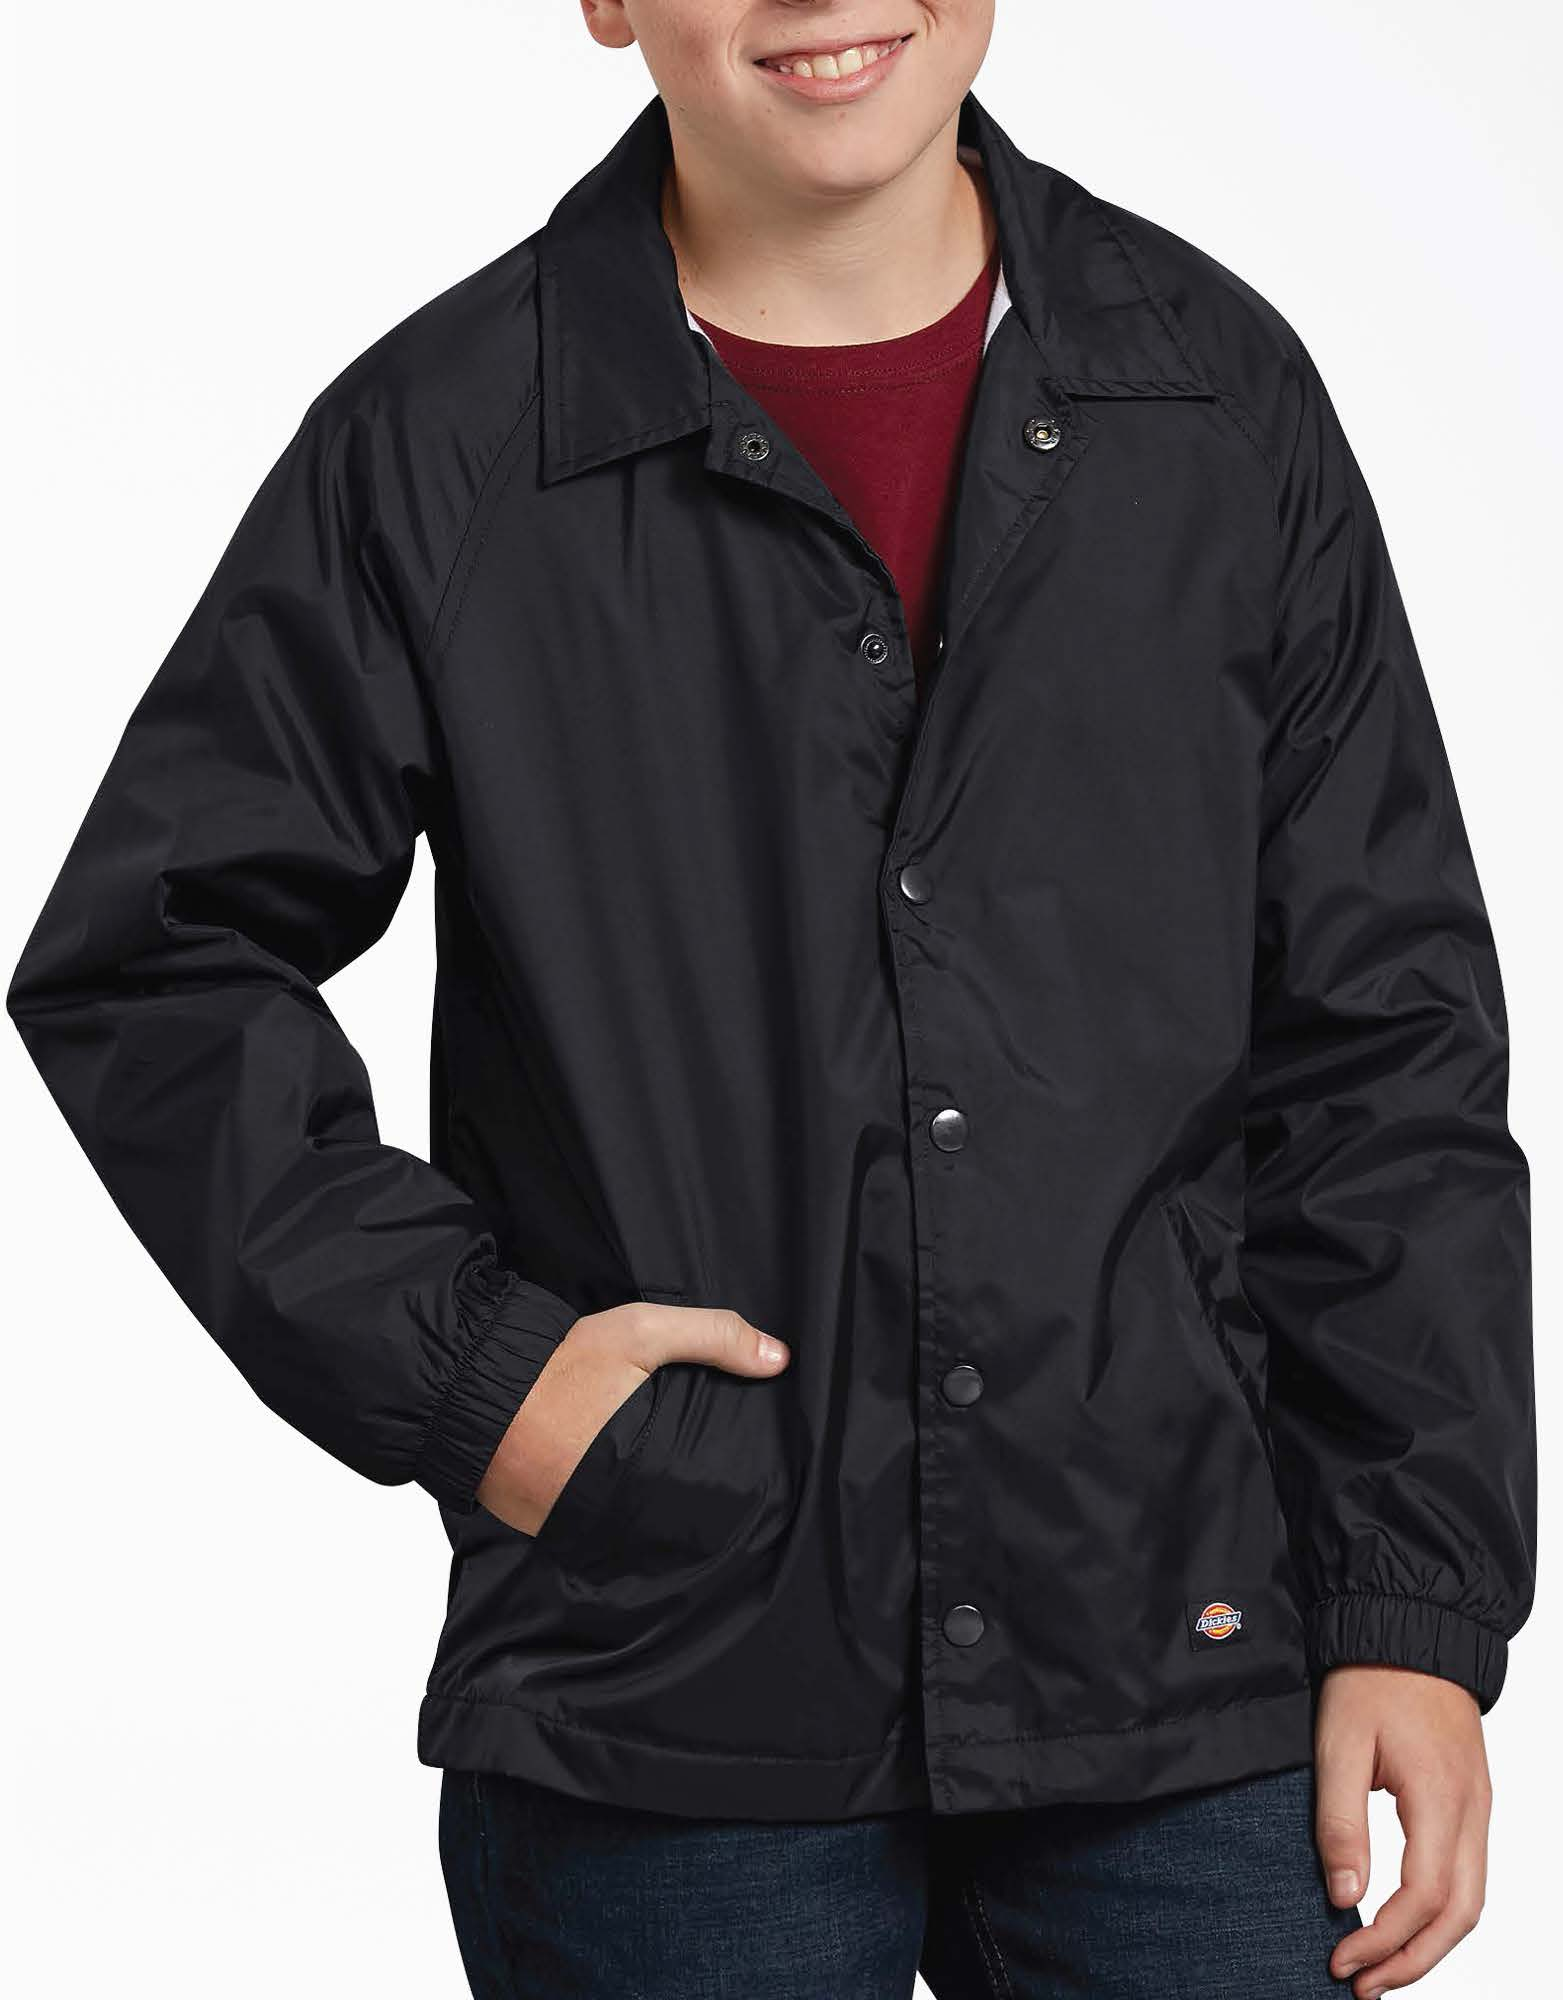 Kids' Snap Front Nylon Jacket - Black (BK)